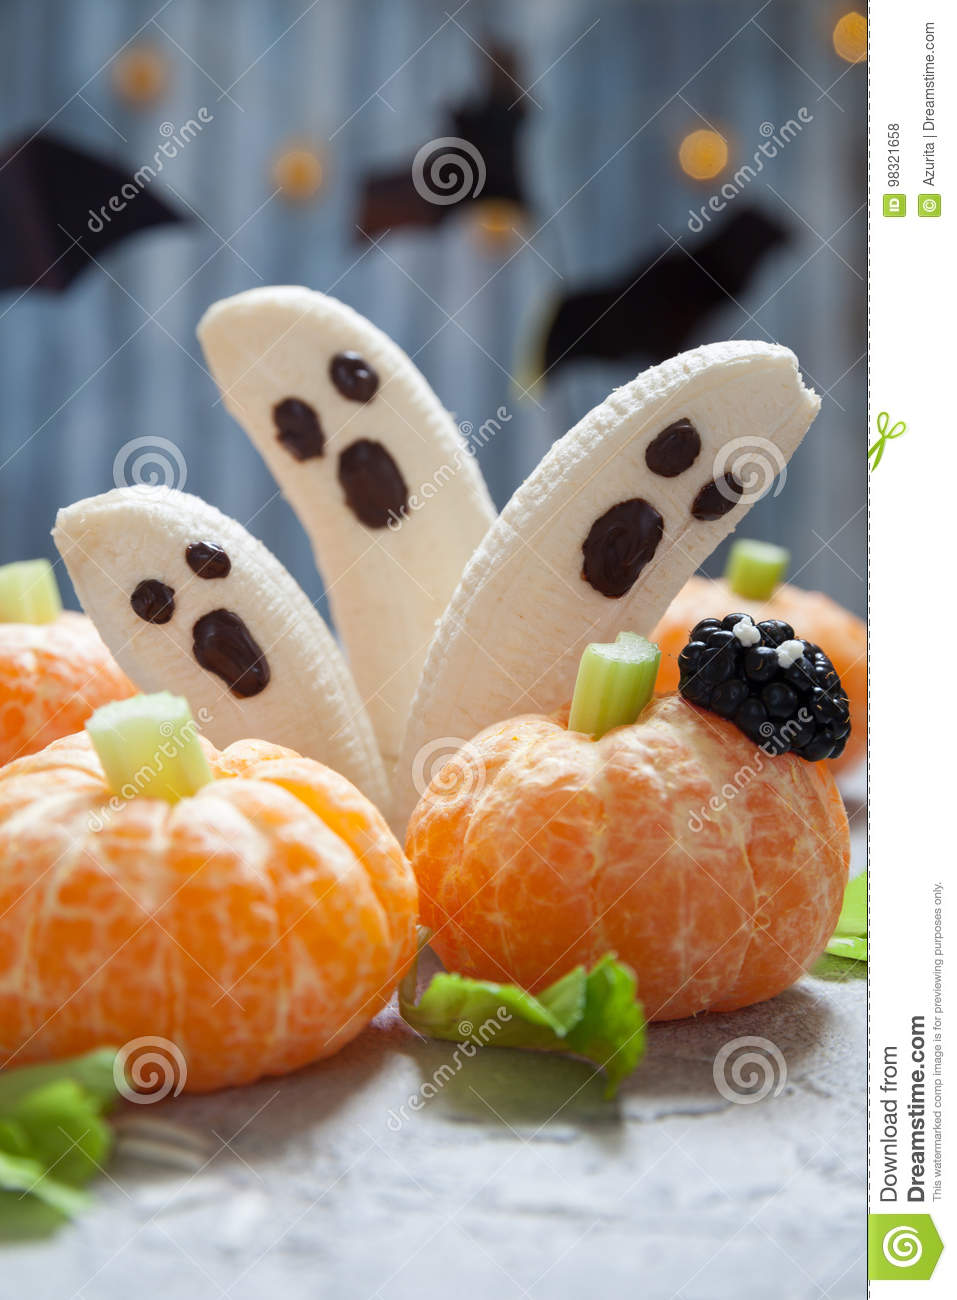 Fruit Halloween Treats. Banana Ghosts and Clementine Orange Pumpkins